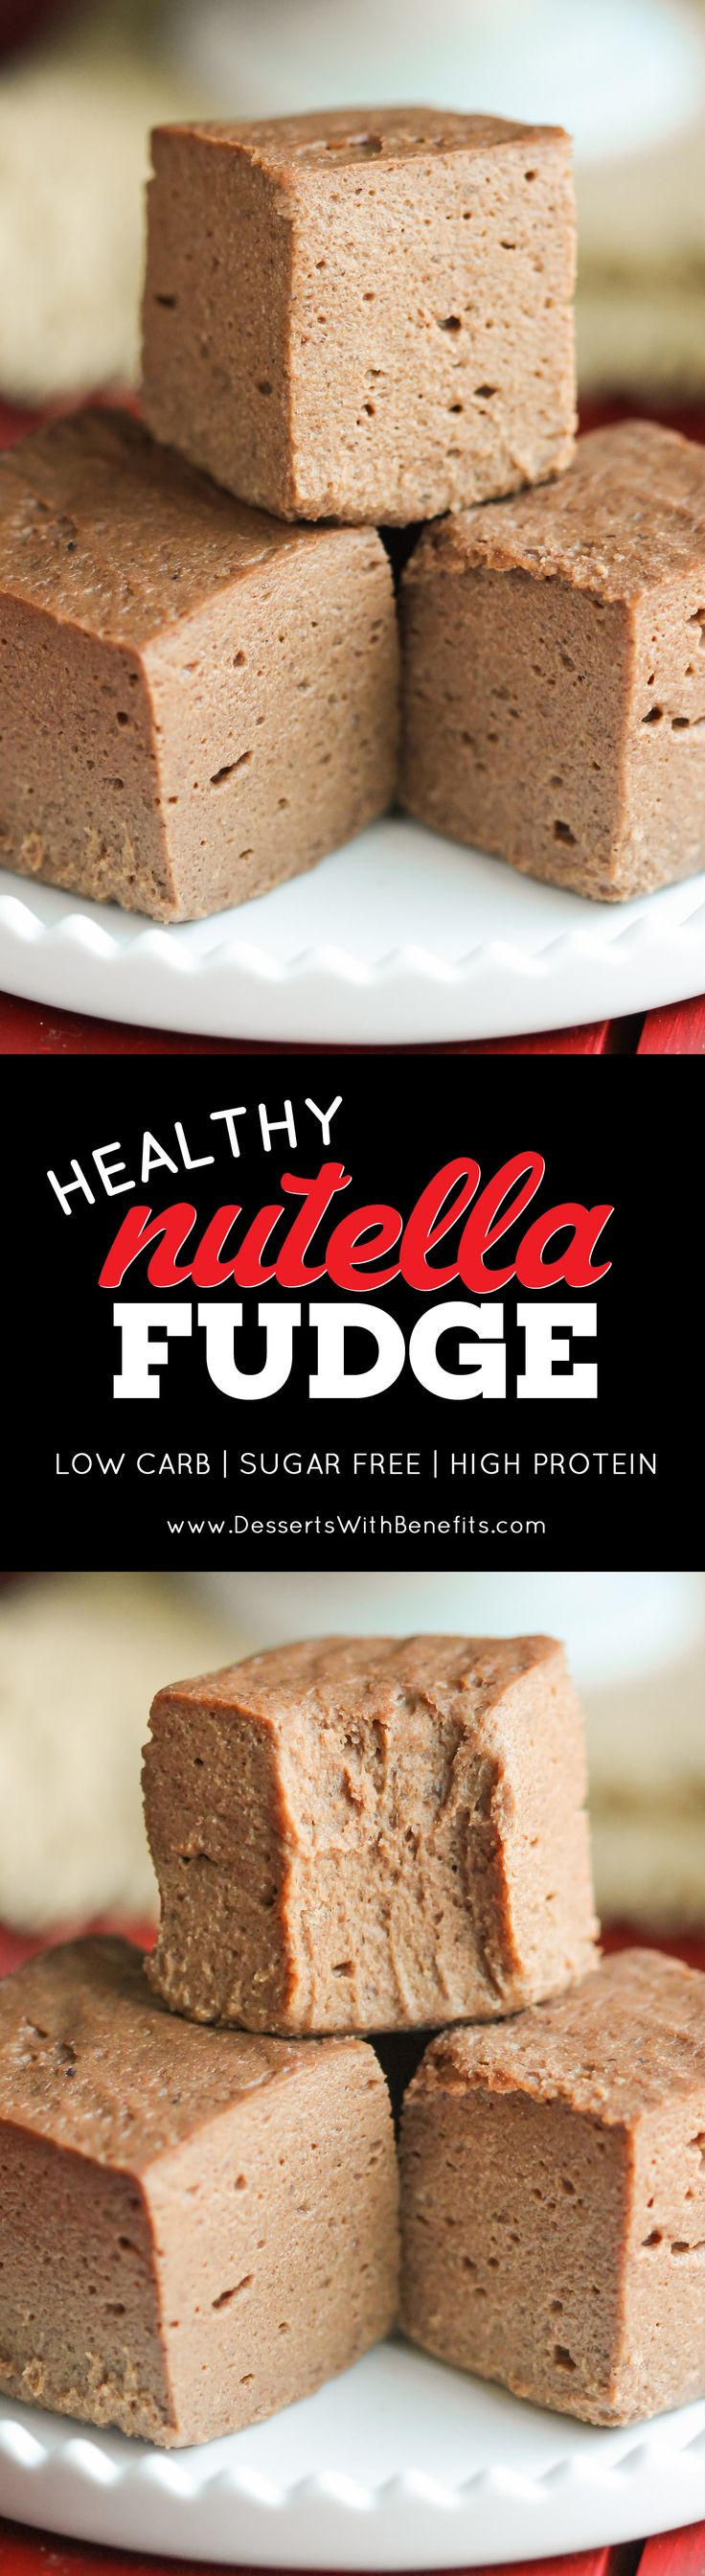 This Healthy Nutella Fudge is sweet, chocolatey, fluffy, and delicious. Oh, and it's made with two secret ingredients! Can you guess what they are? This addicting fudge is packed full of protein, fiber, and healthy fats, and none of the added sugar or artificial ingredients. It sure doesn't taste low calorie, sugar free, low carb, high protein, high fiber, and gluten free!